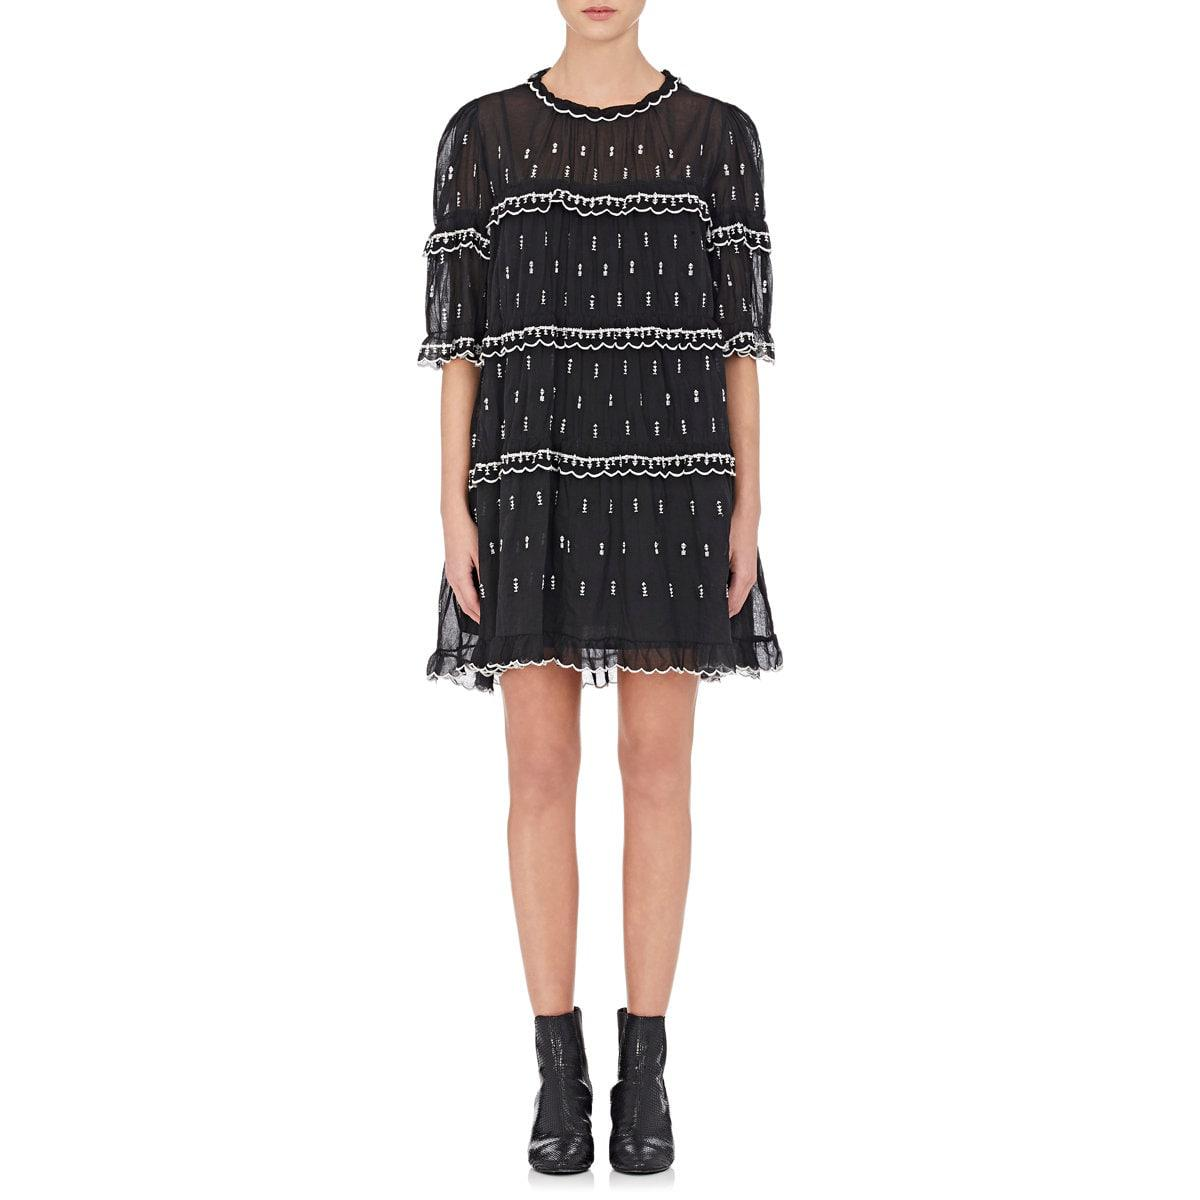 8aed96ee091 Étoile Isabel Marant Lyin Cotton Voile Embroidered Dress in Black - Lyst